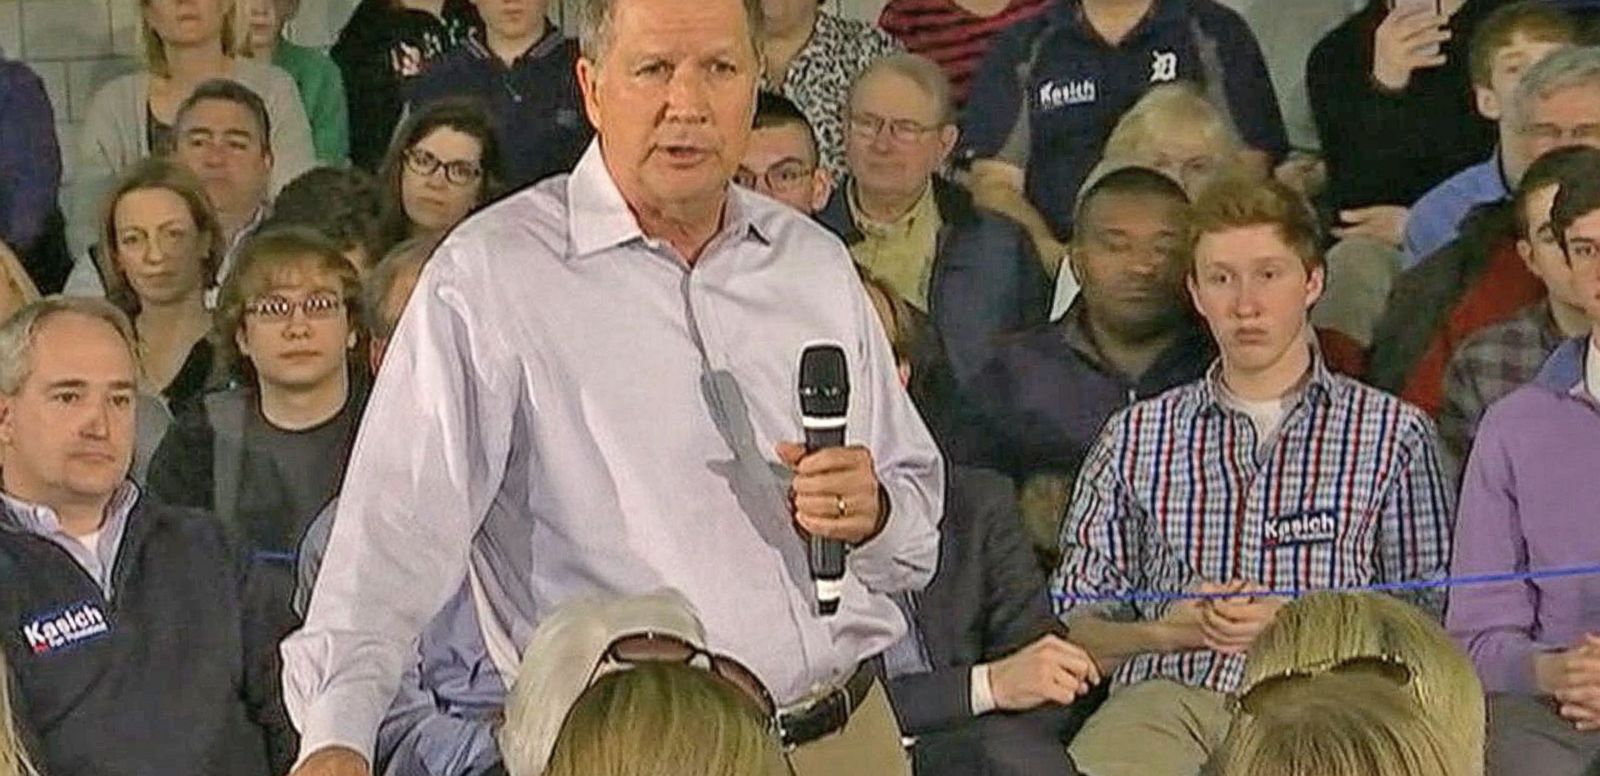 VIDEO: John Kasich Details Campaign Strategy After 2nd Place Finish in Michigan